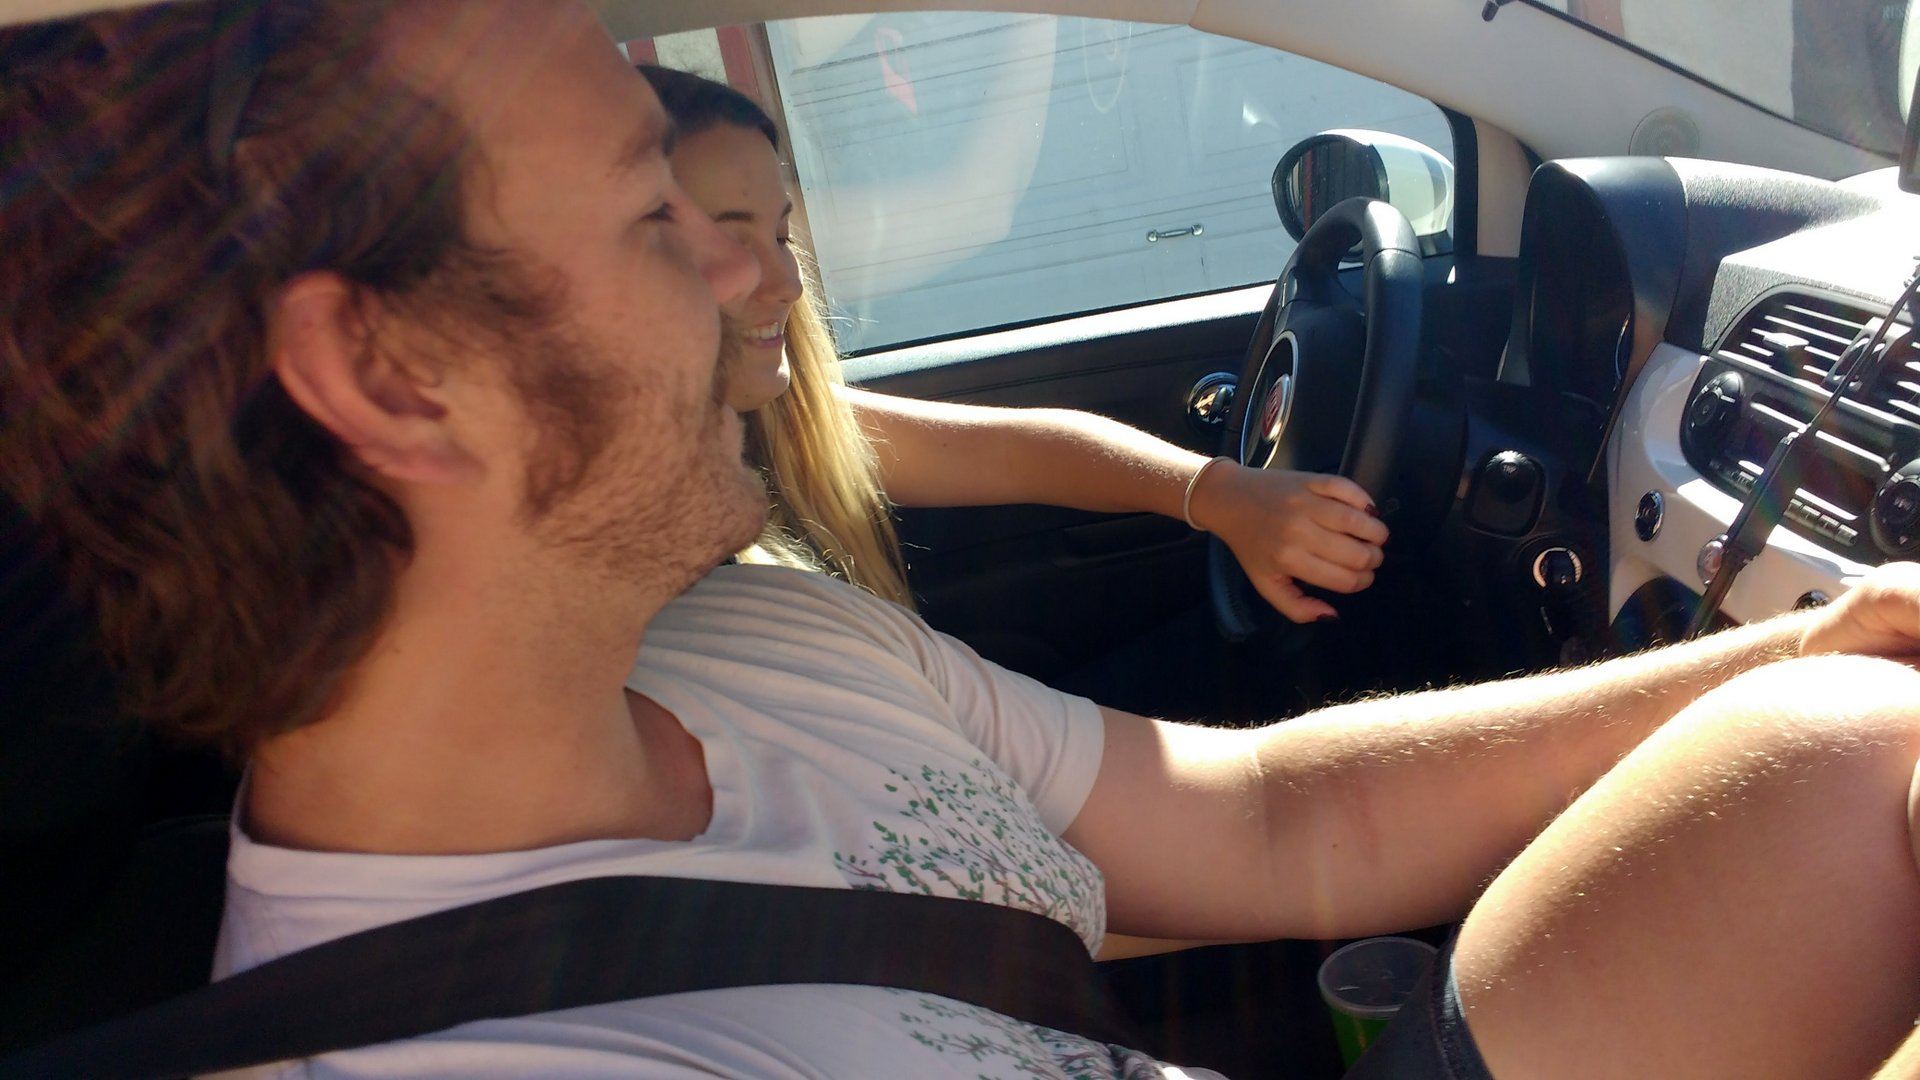 interior shot of 2 people in a Fiat 500